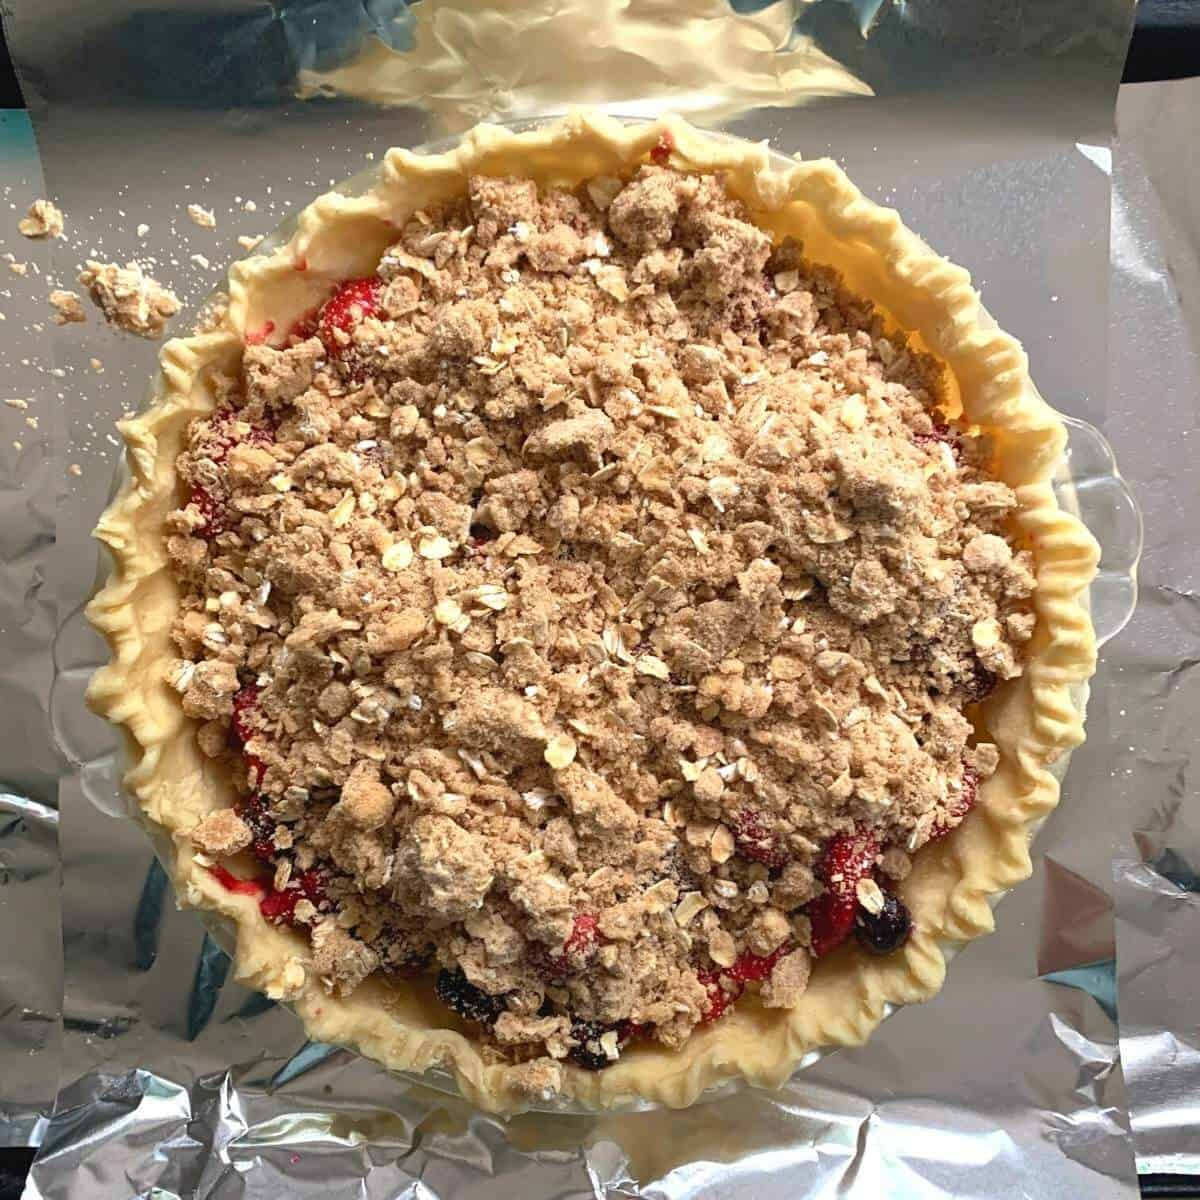 mixed berry pie ready to be baked